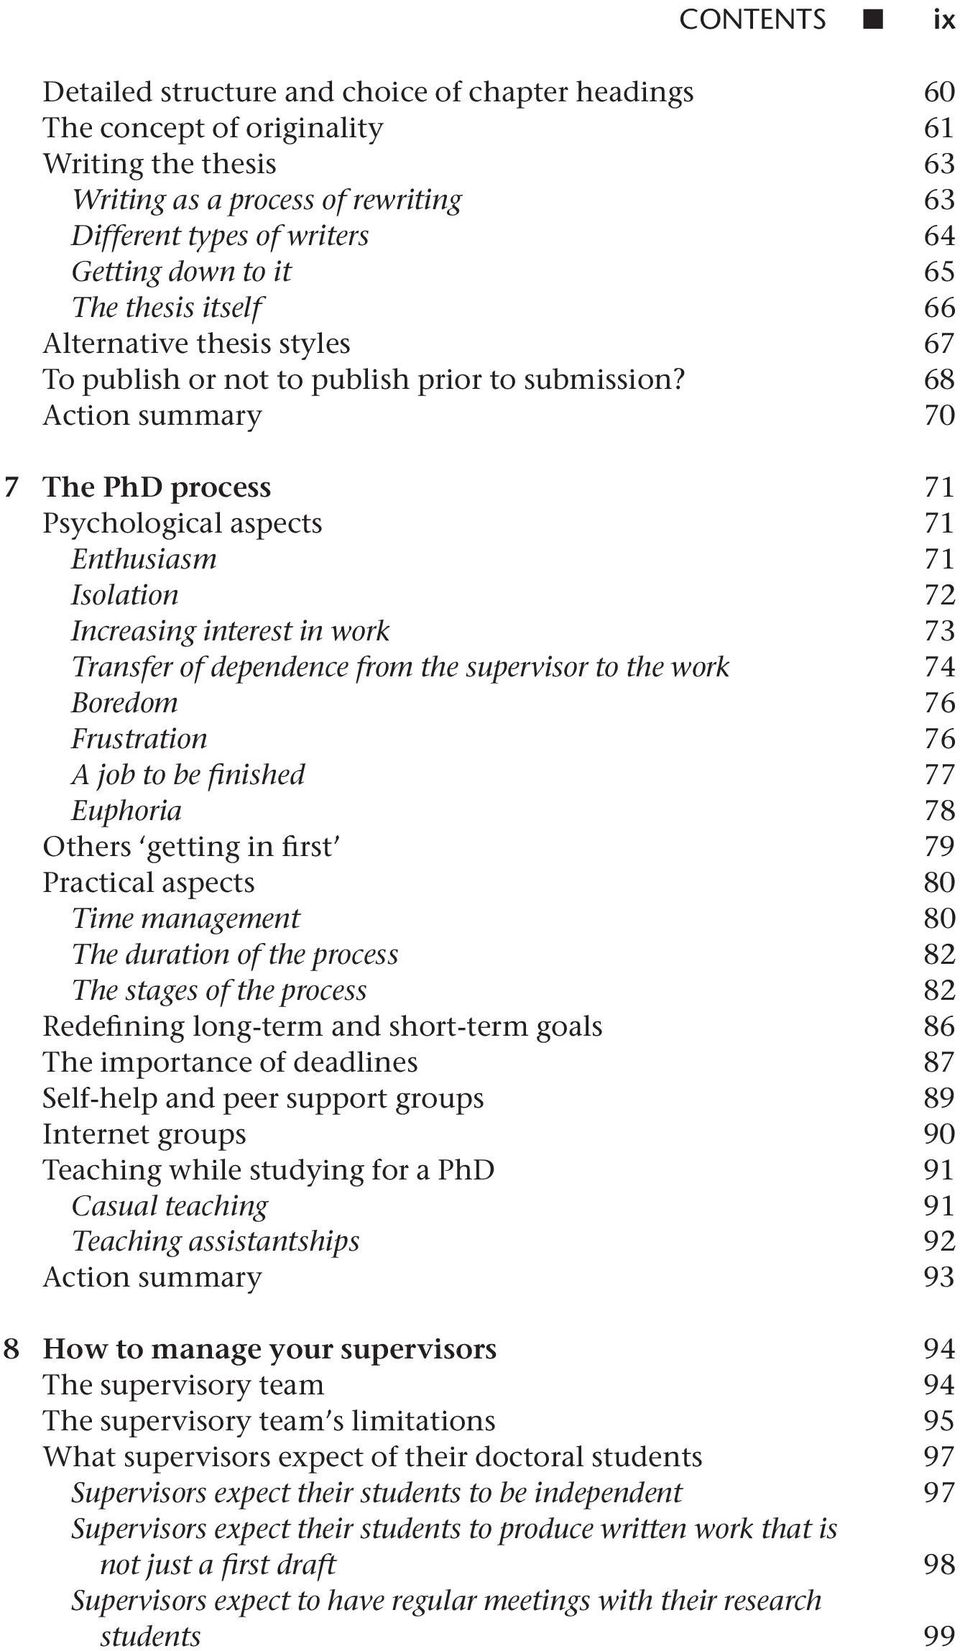 68 Action summary 70 7 The PhD process 71 Psychological aspects 71 Enthusiasm 71 Isolation 72 Increasing interest in work 73 Transfer of dependence from the supervisor to the work 74 Boredom 76